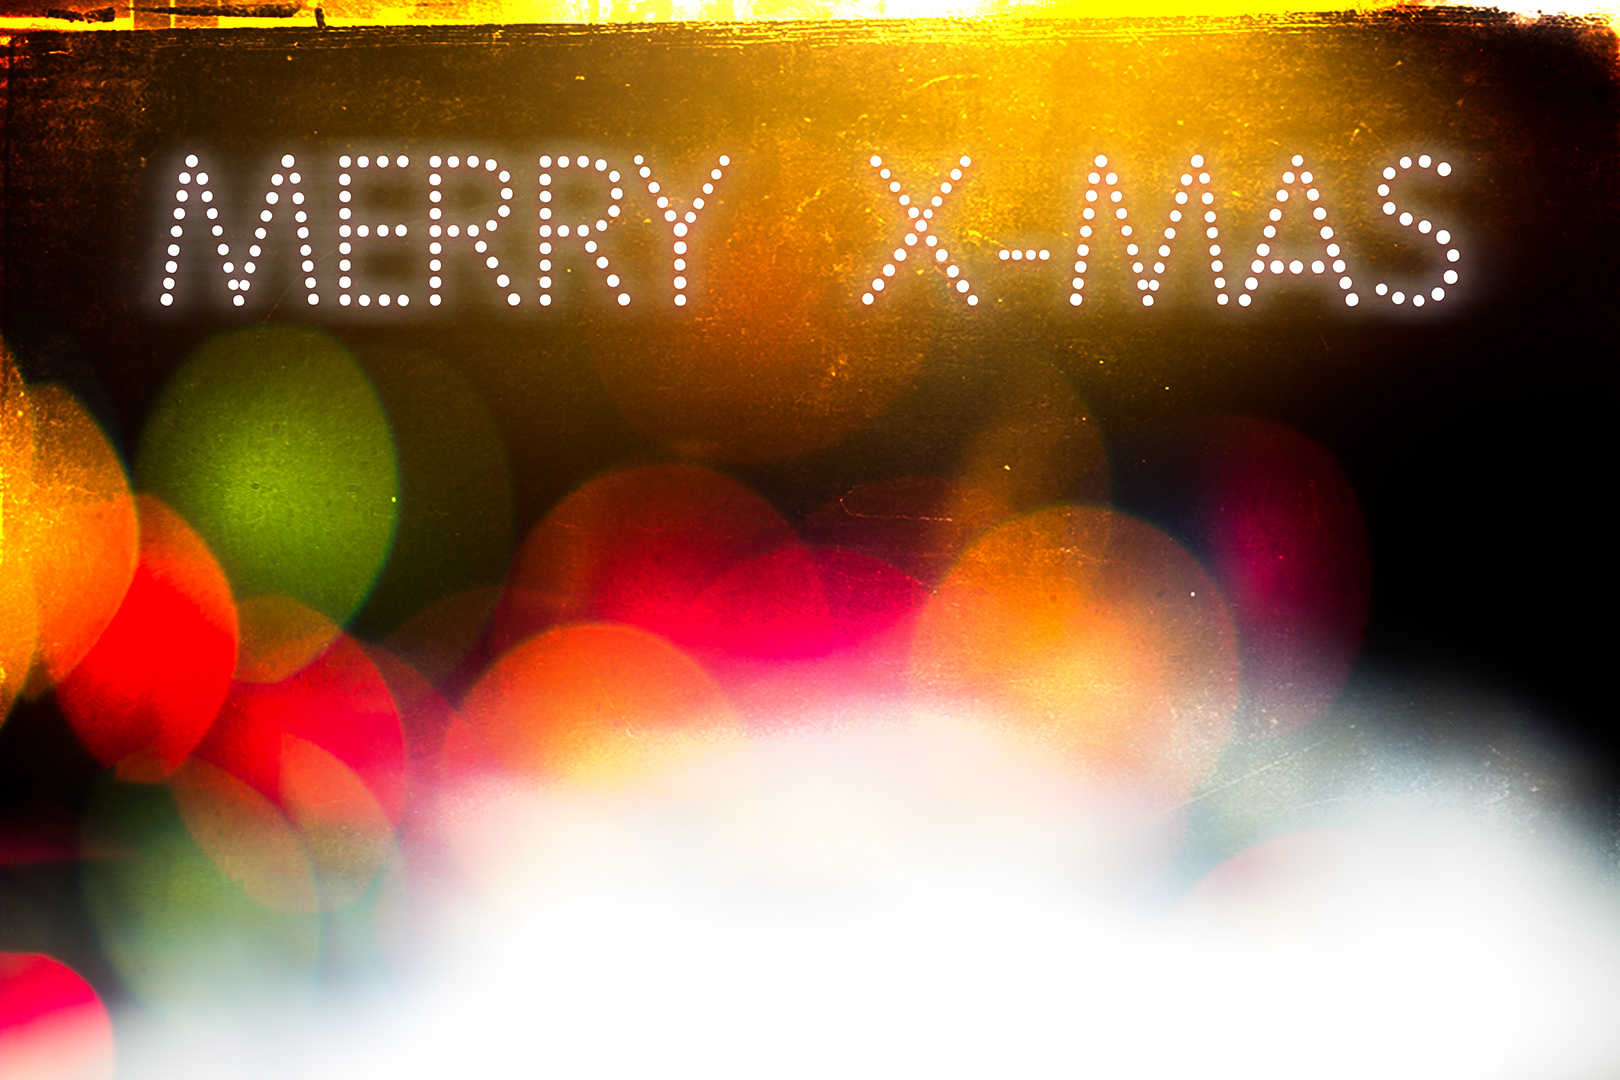 merry x-mas from Markus Hartel street photography